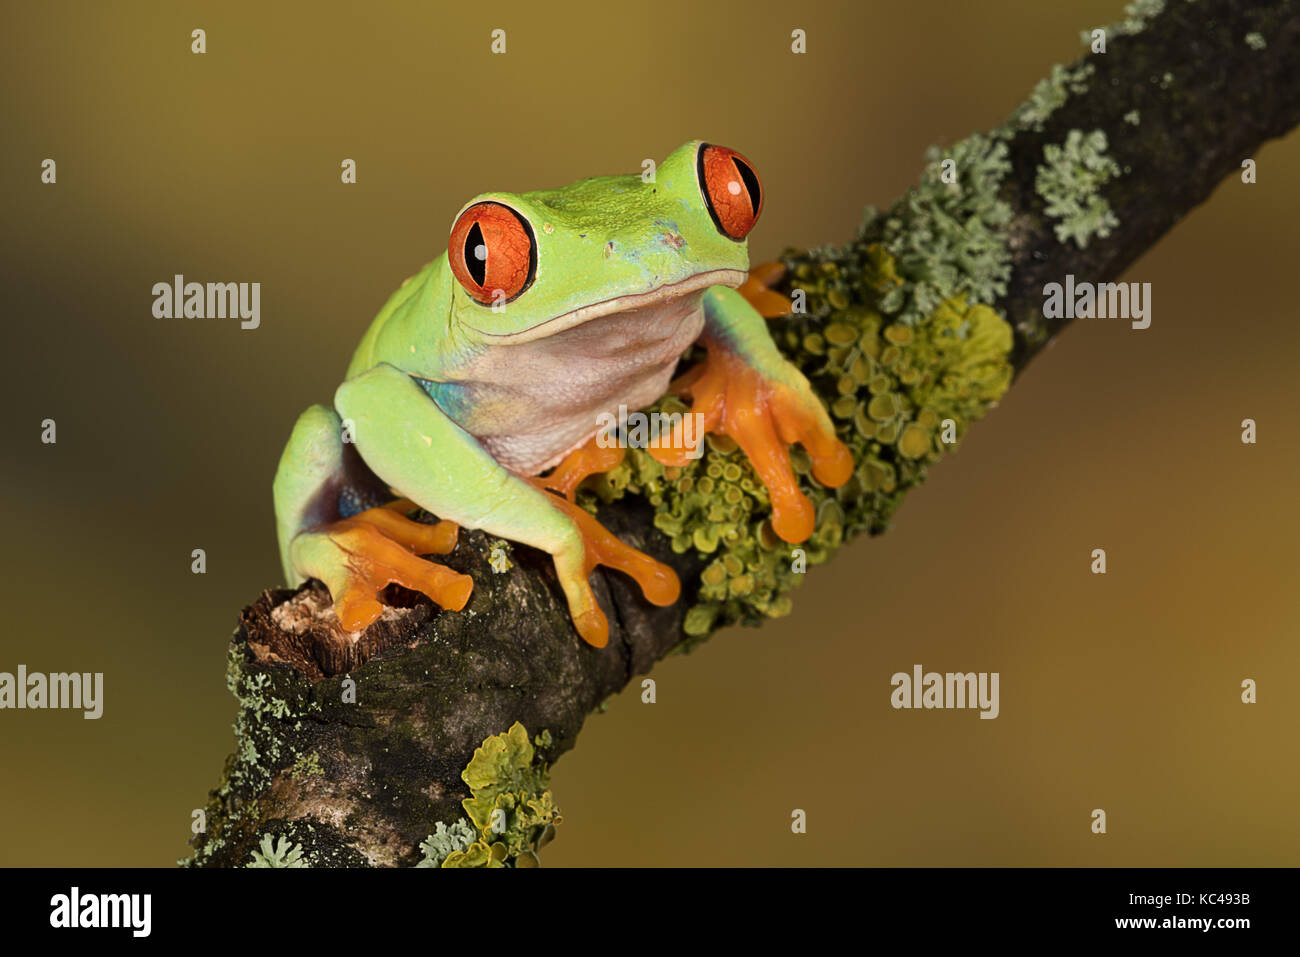 Close up portrait of a red eyed tree frog balancing on a branch against a plain natural background - Stock Image